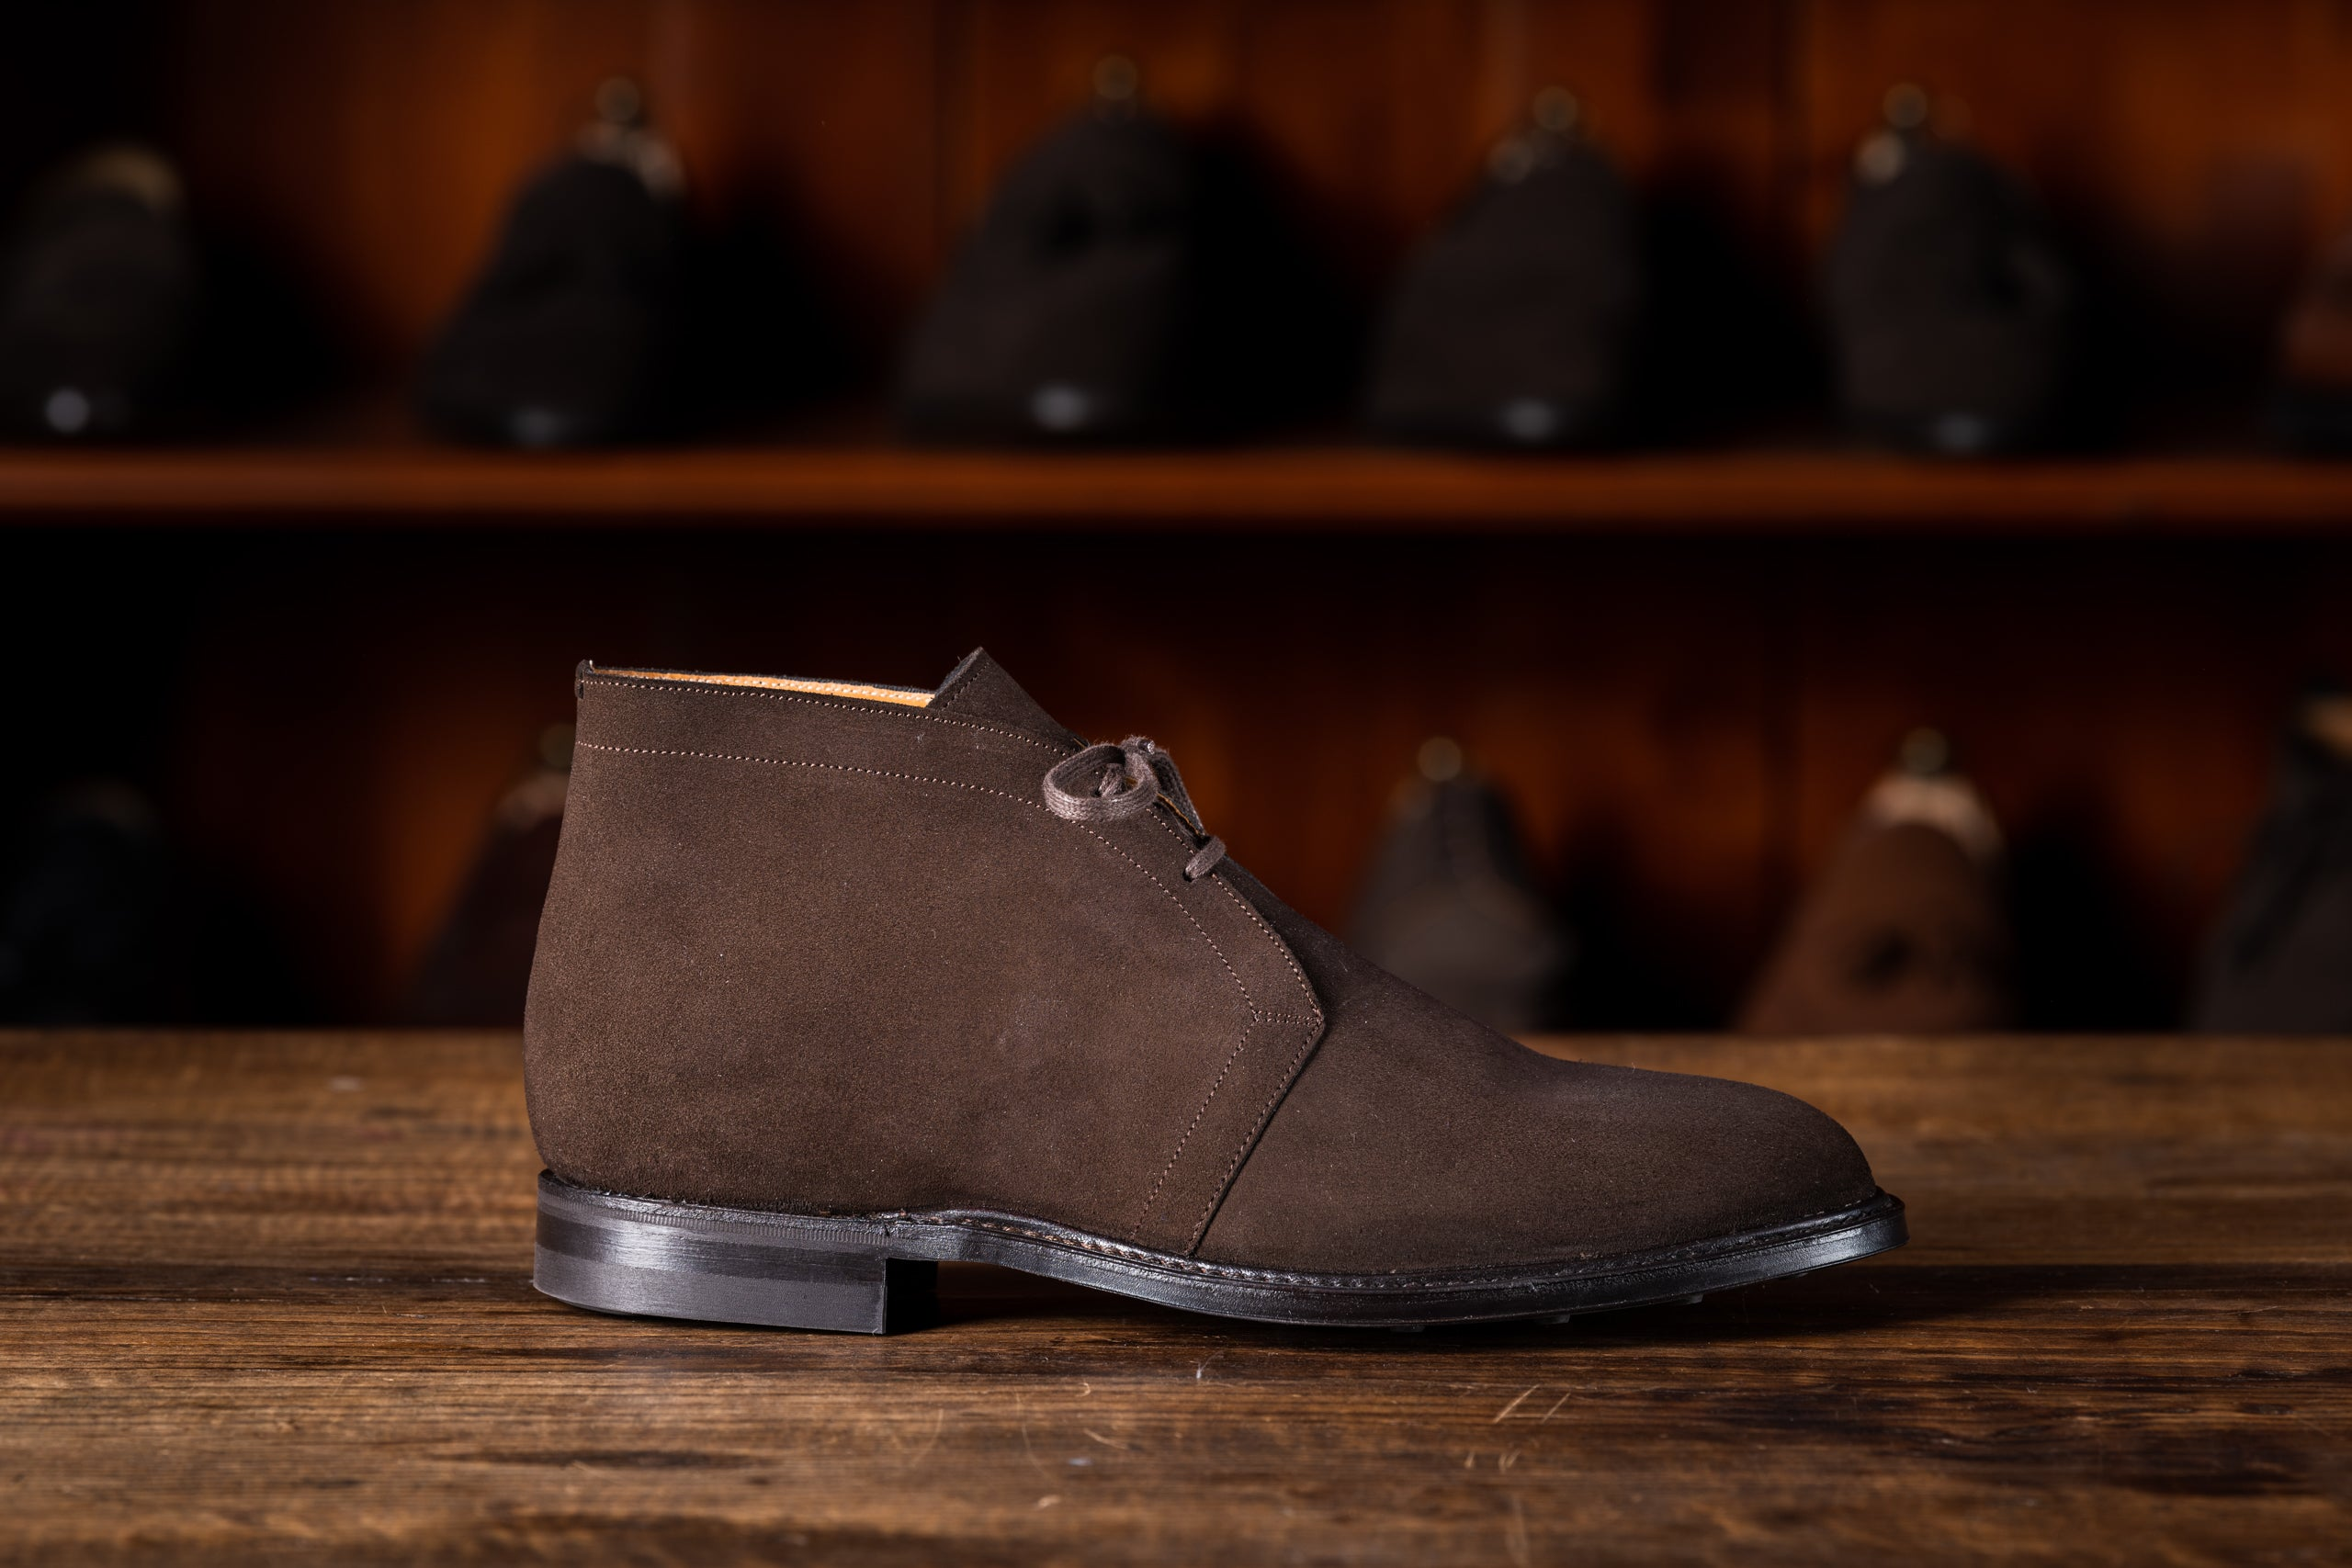 Chukka Boot // English Suede // Dunkelbraun // Dainite Sohle